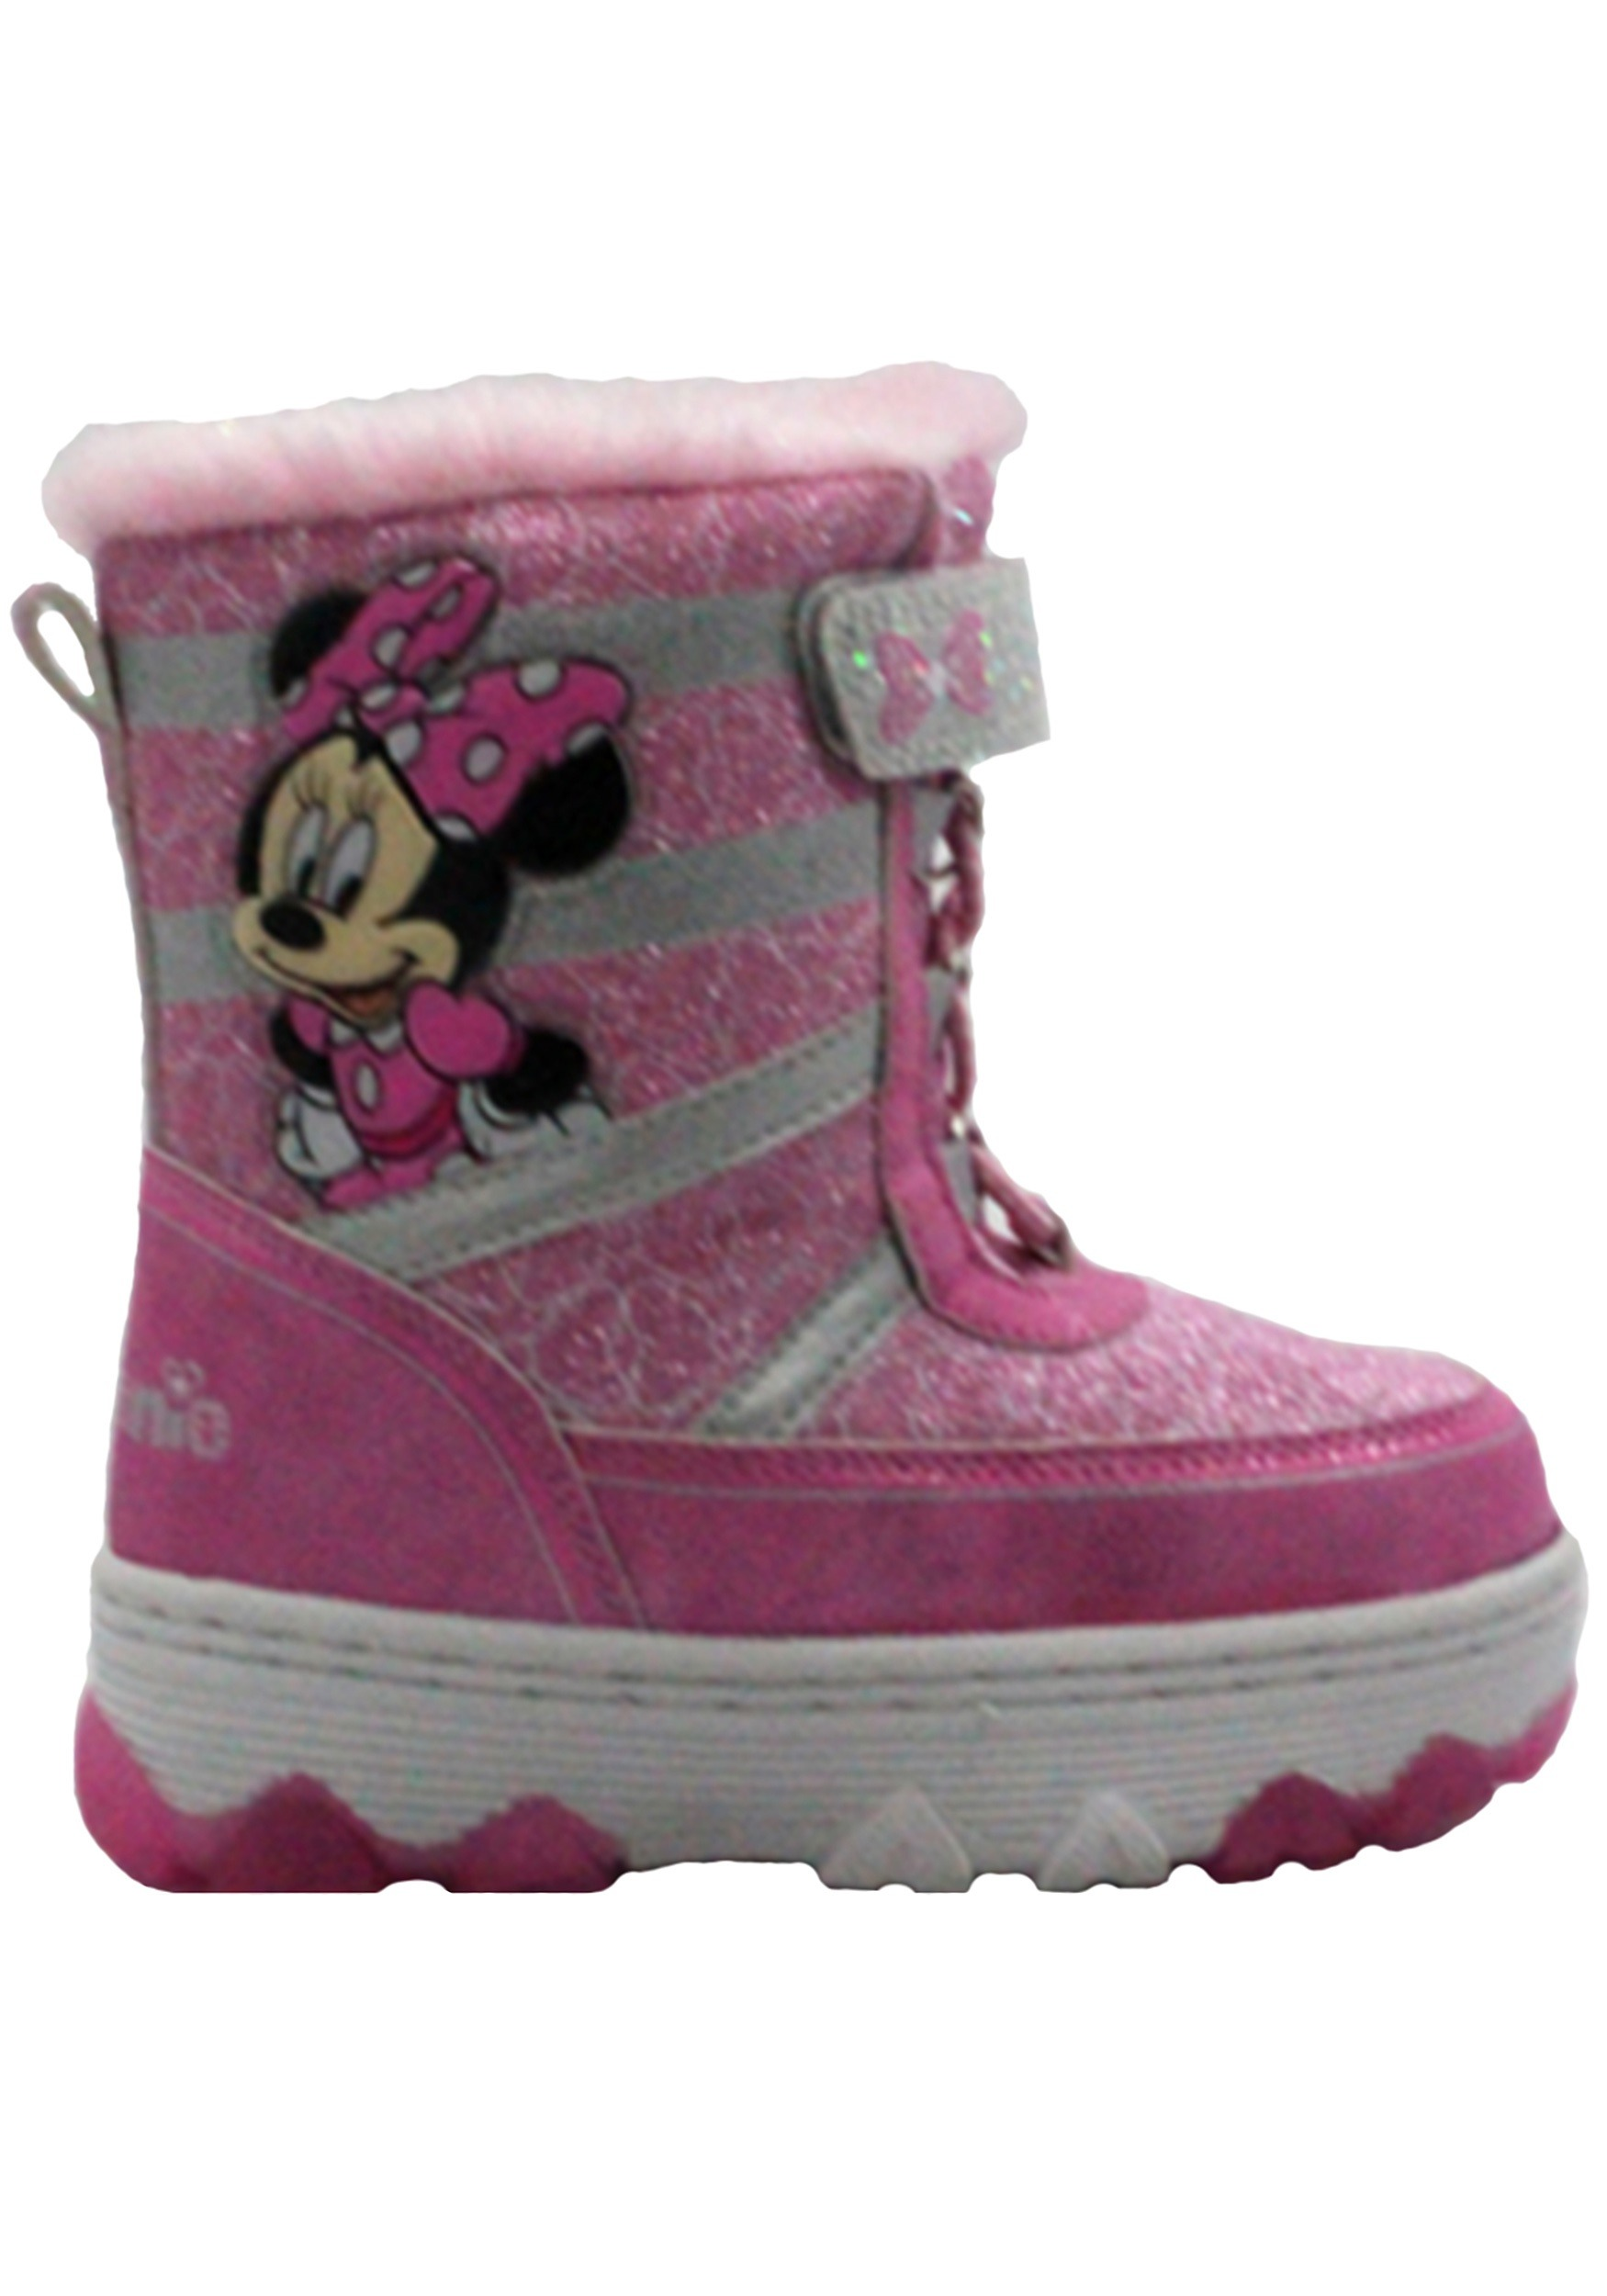 Minnie Mouse Child Pink Snow Boot